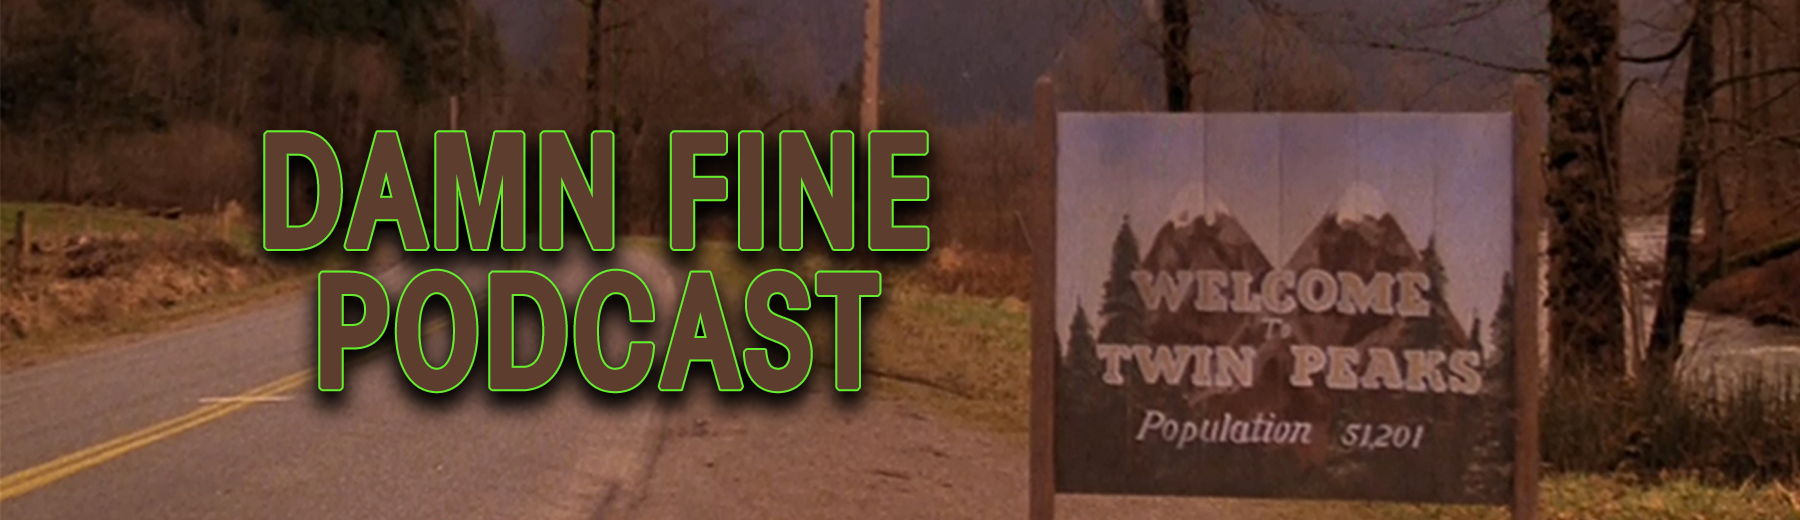 Damn Fine Podcast - A Twin Peaks Podcast